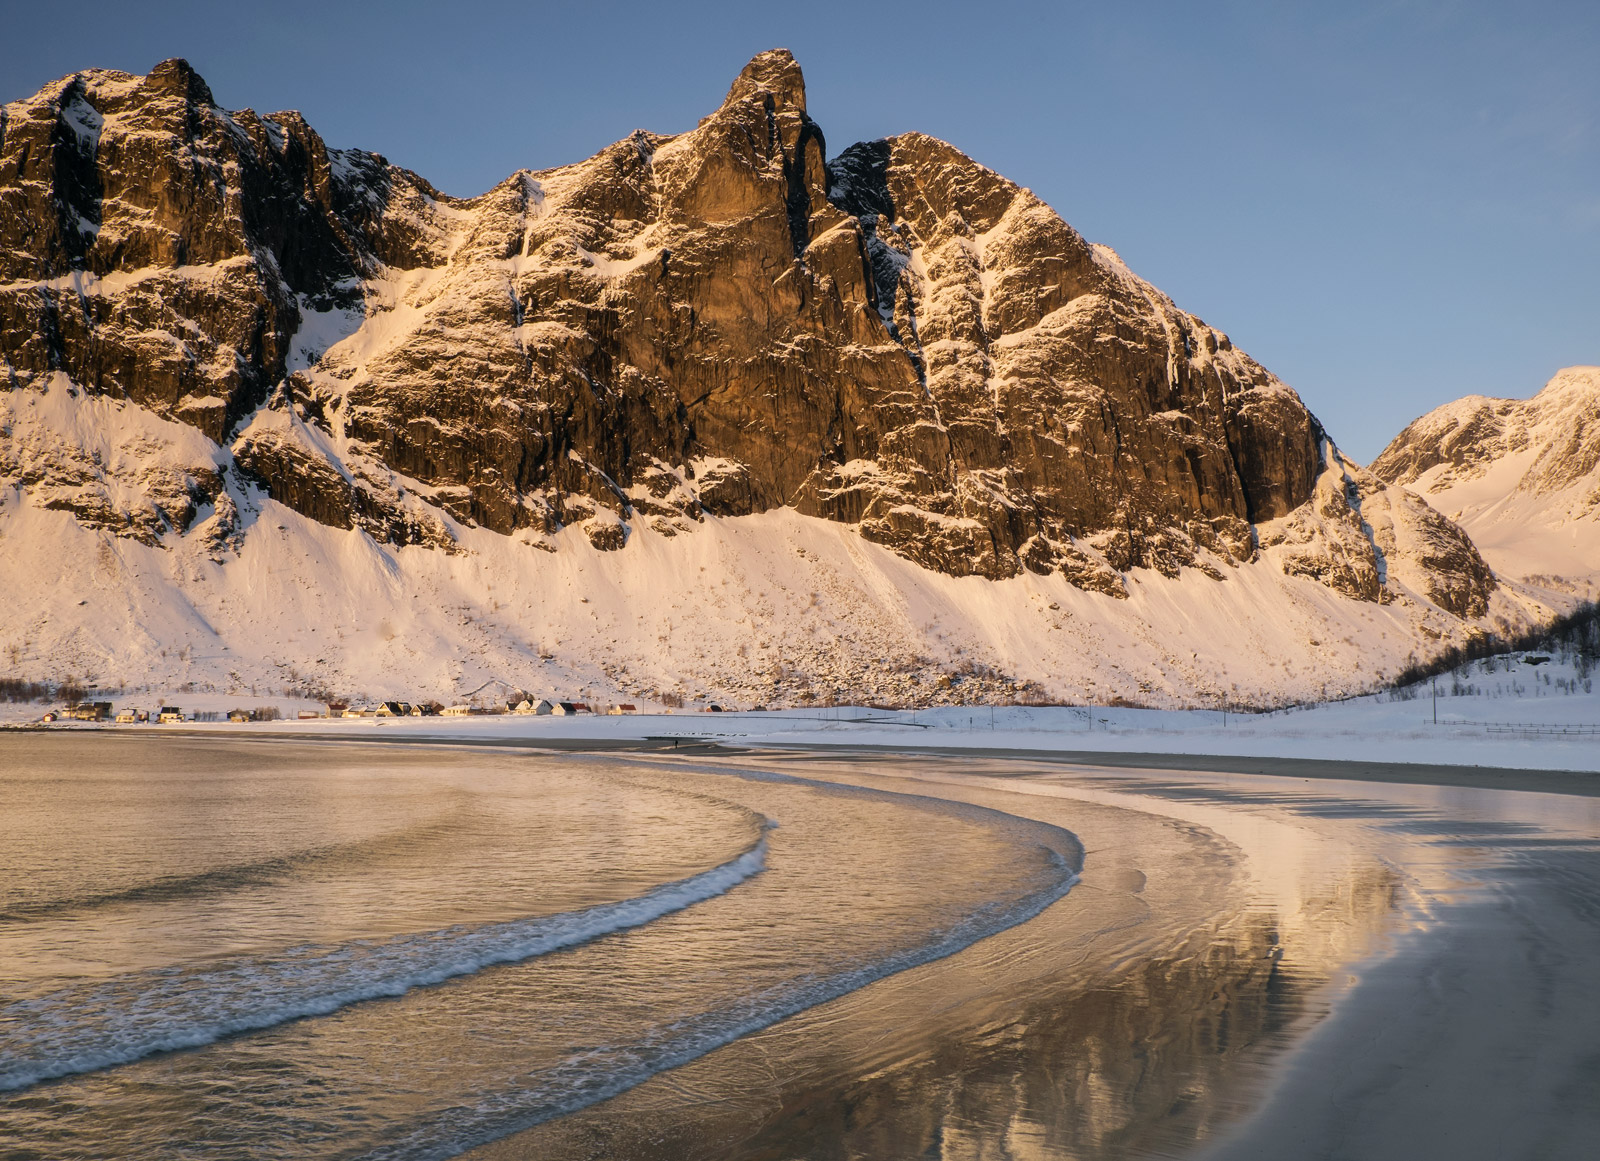 Wave Train Ersfjord, Ersfjord Senja, Norway, convex, wave, golden, reflections, sandy, beach, sunset, pinkens, snow, blu, photo